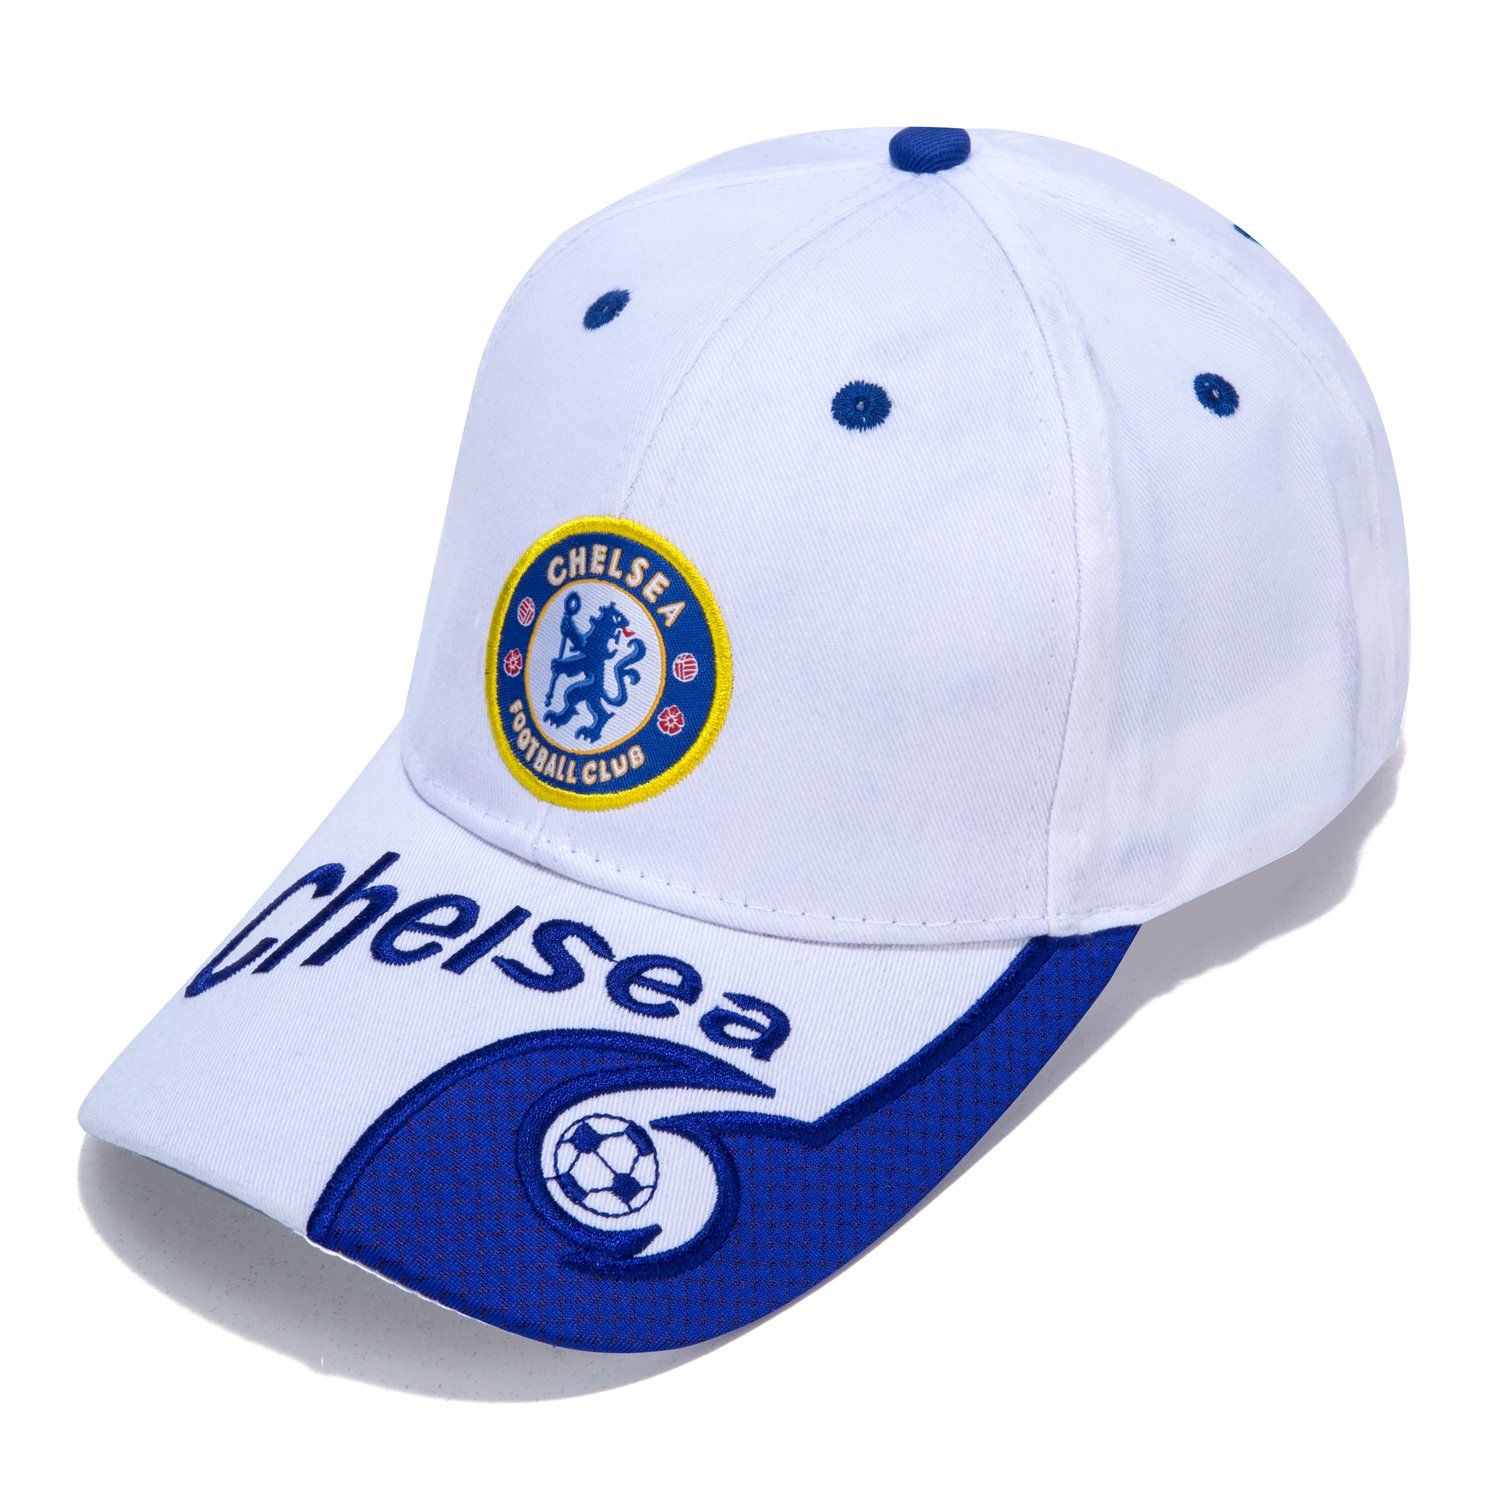 54d2d597e65 DanielFelix Chelsea F.C. -Embroidered Authentic EPL Adjustable White  Baseball Cap